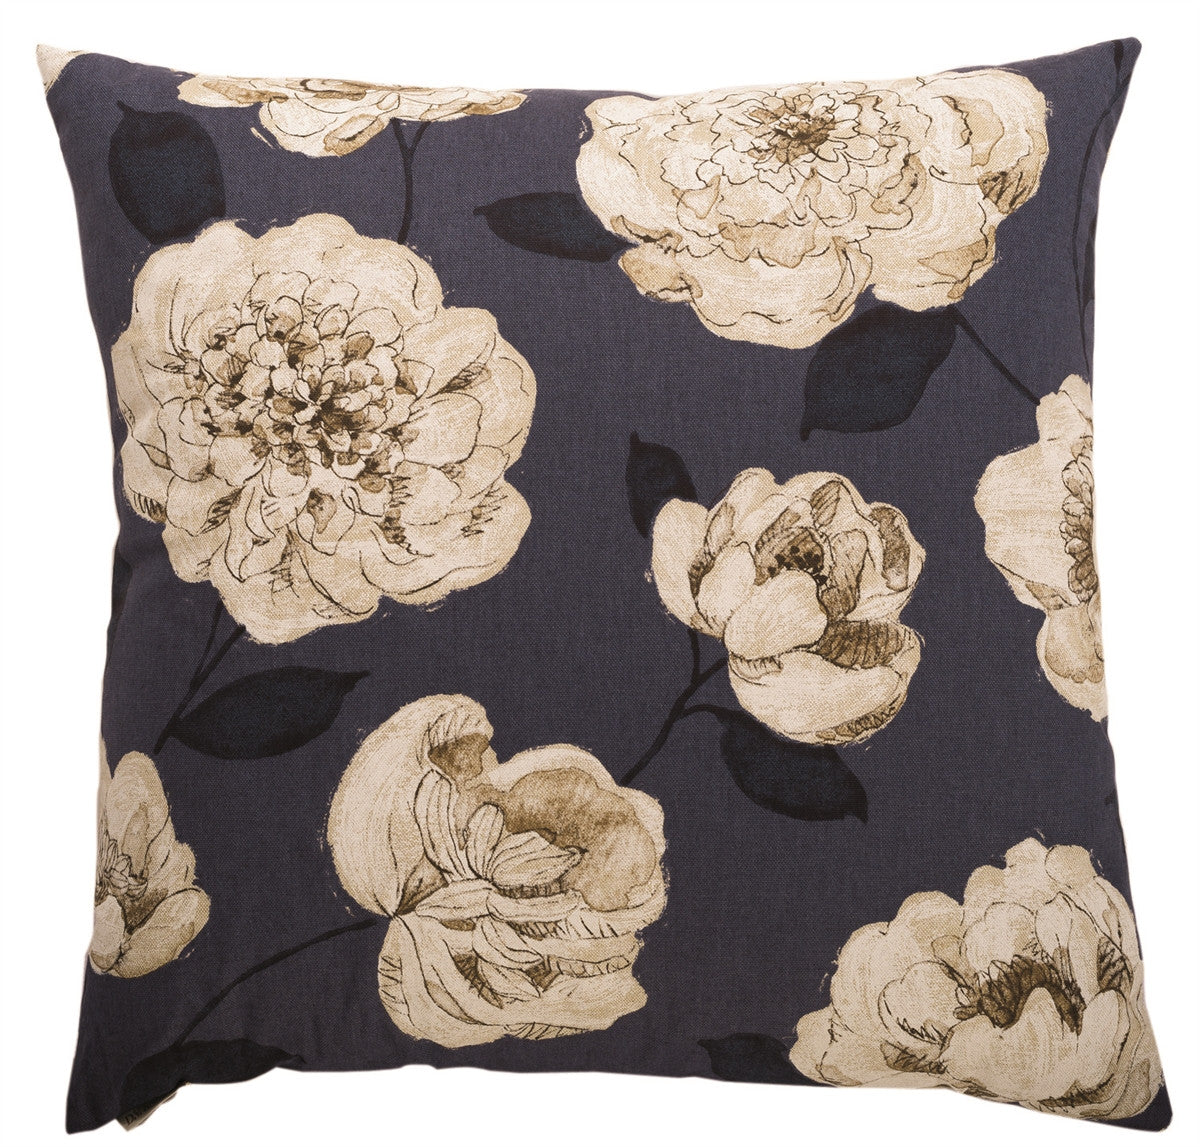 DV Kap Home - Begonia Toss Pillow